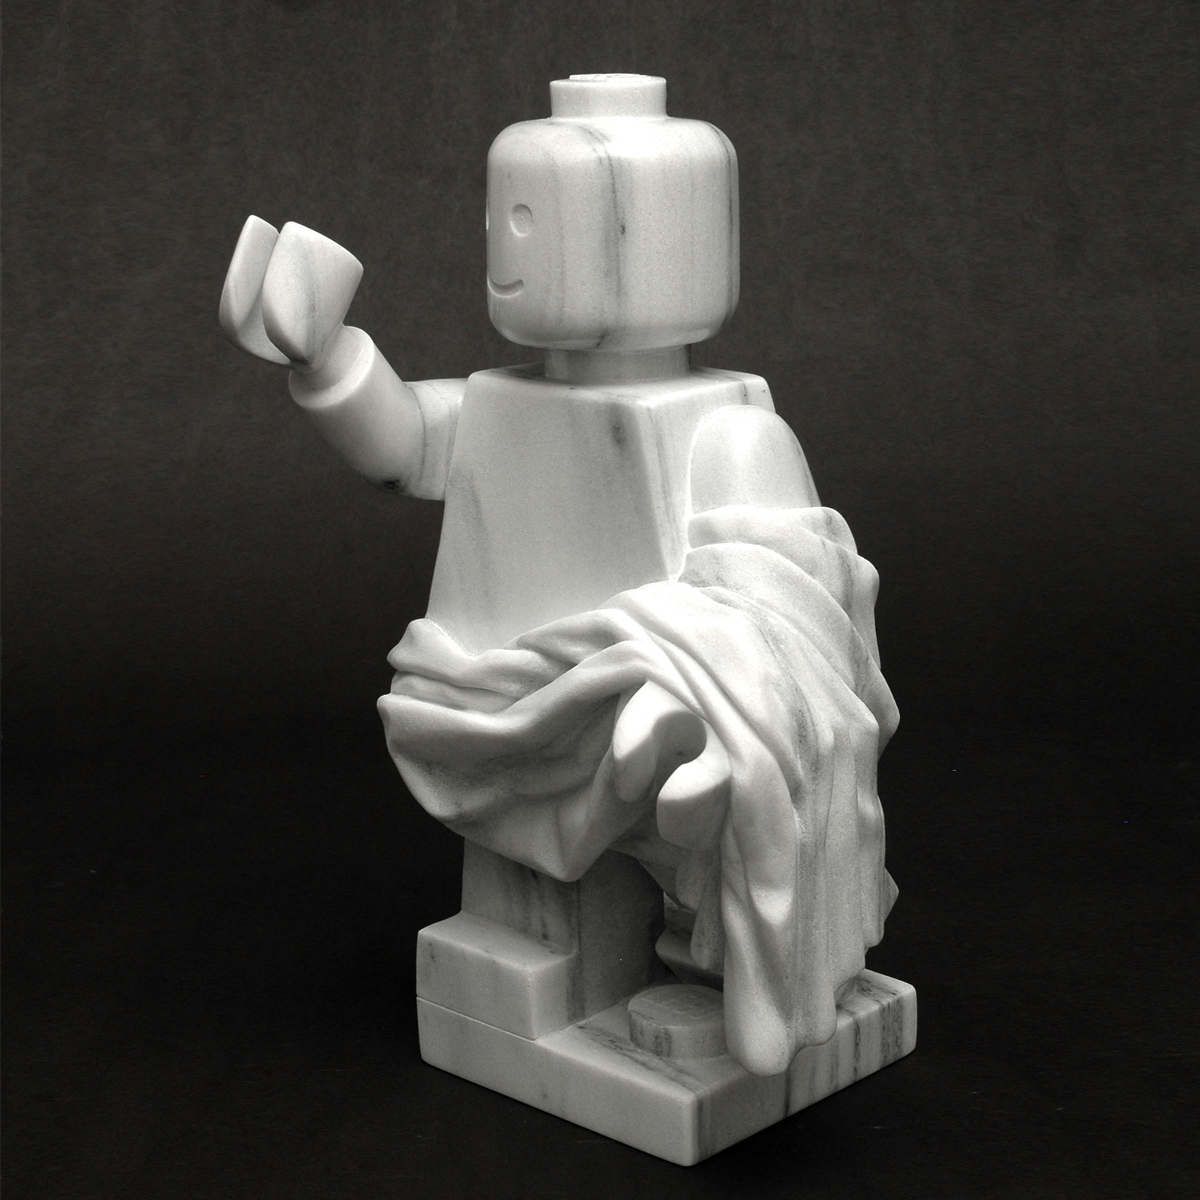 Icon: Legoman, marble, 14 x 8 x 8 in.